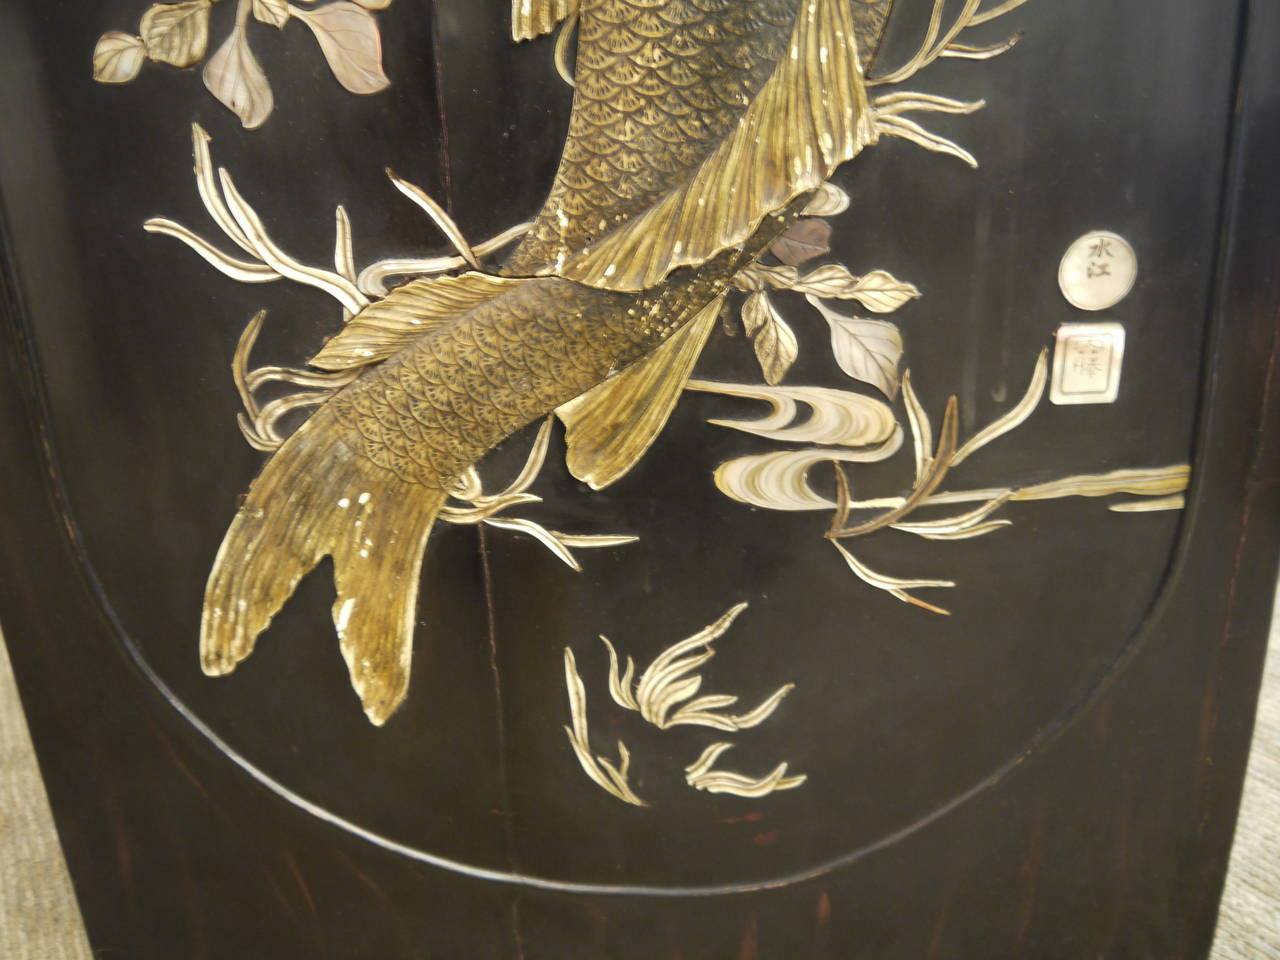 Hand-Carved Large Lacquer Panel with Carp For Sale